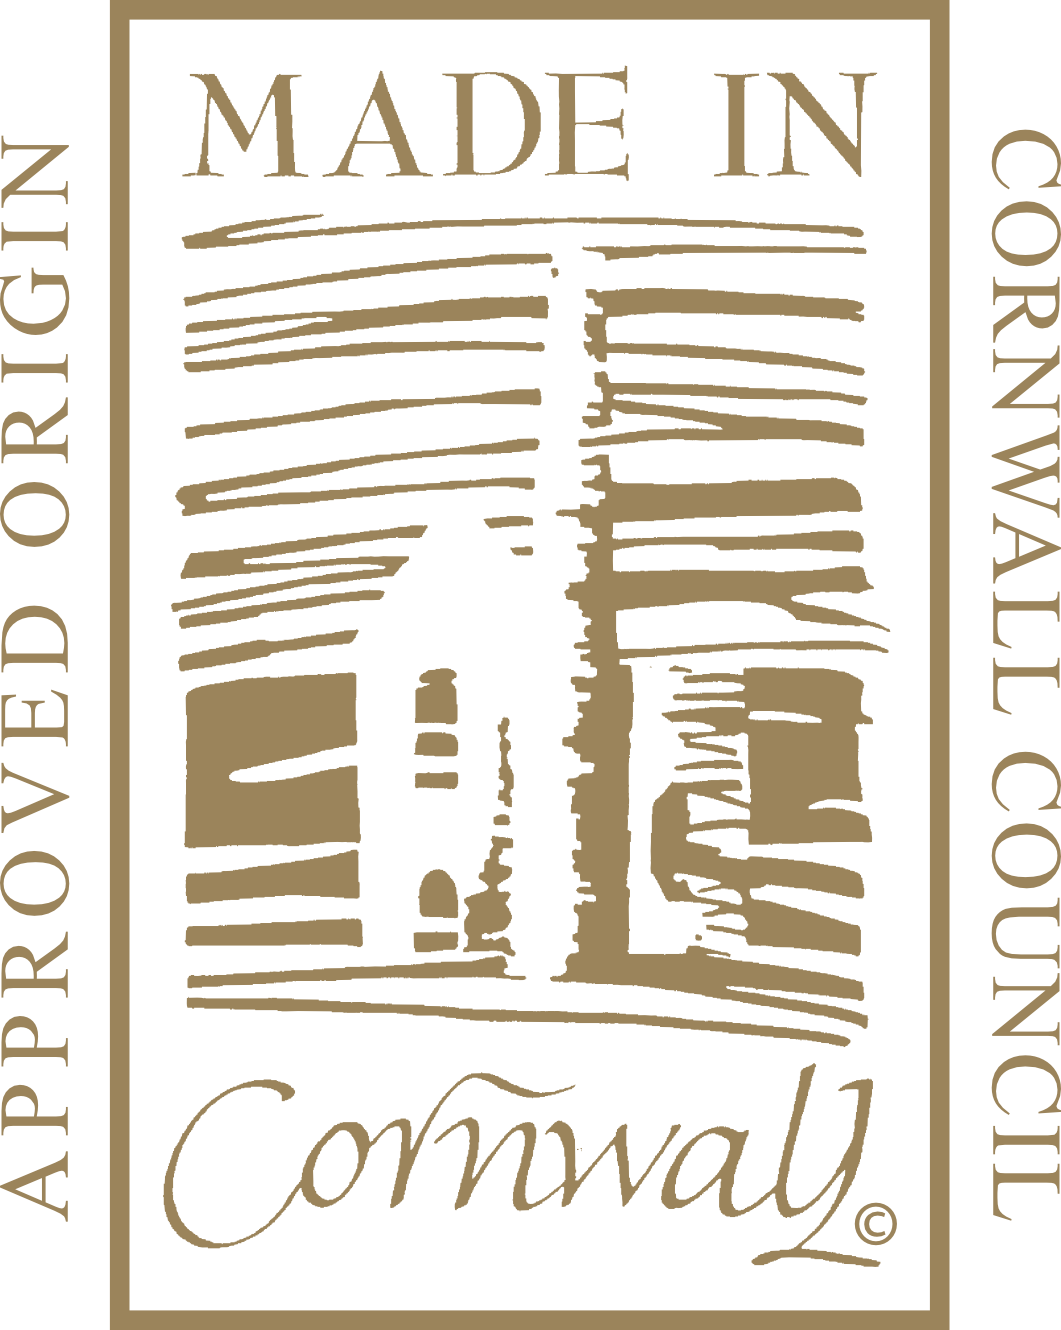 Official Made in Cornwall